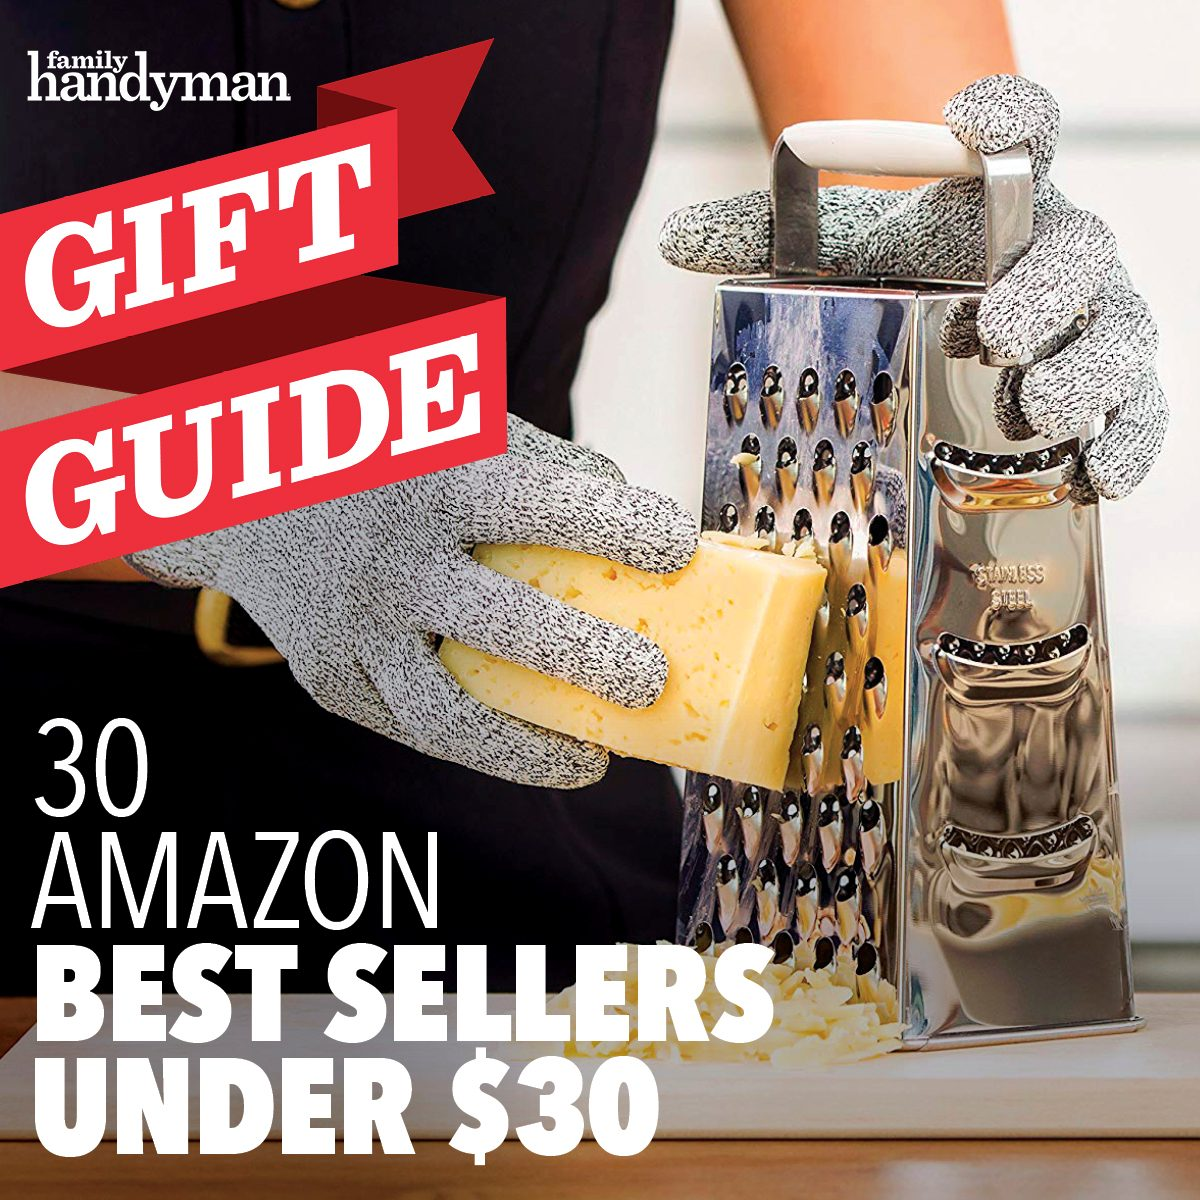 Amazon best sellers under $30